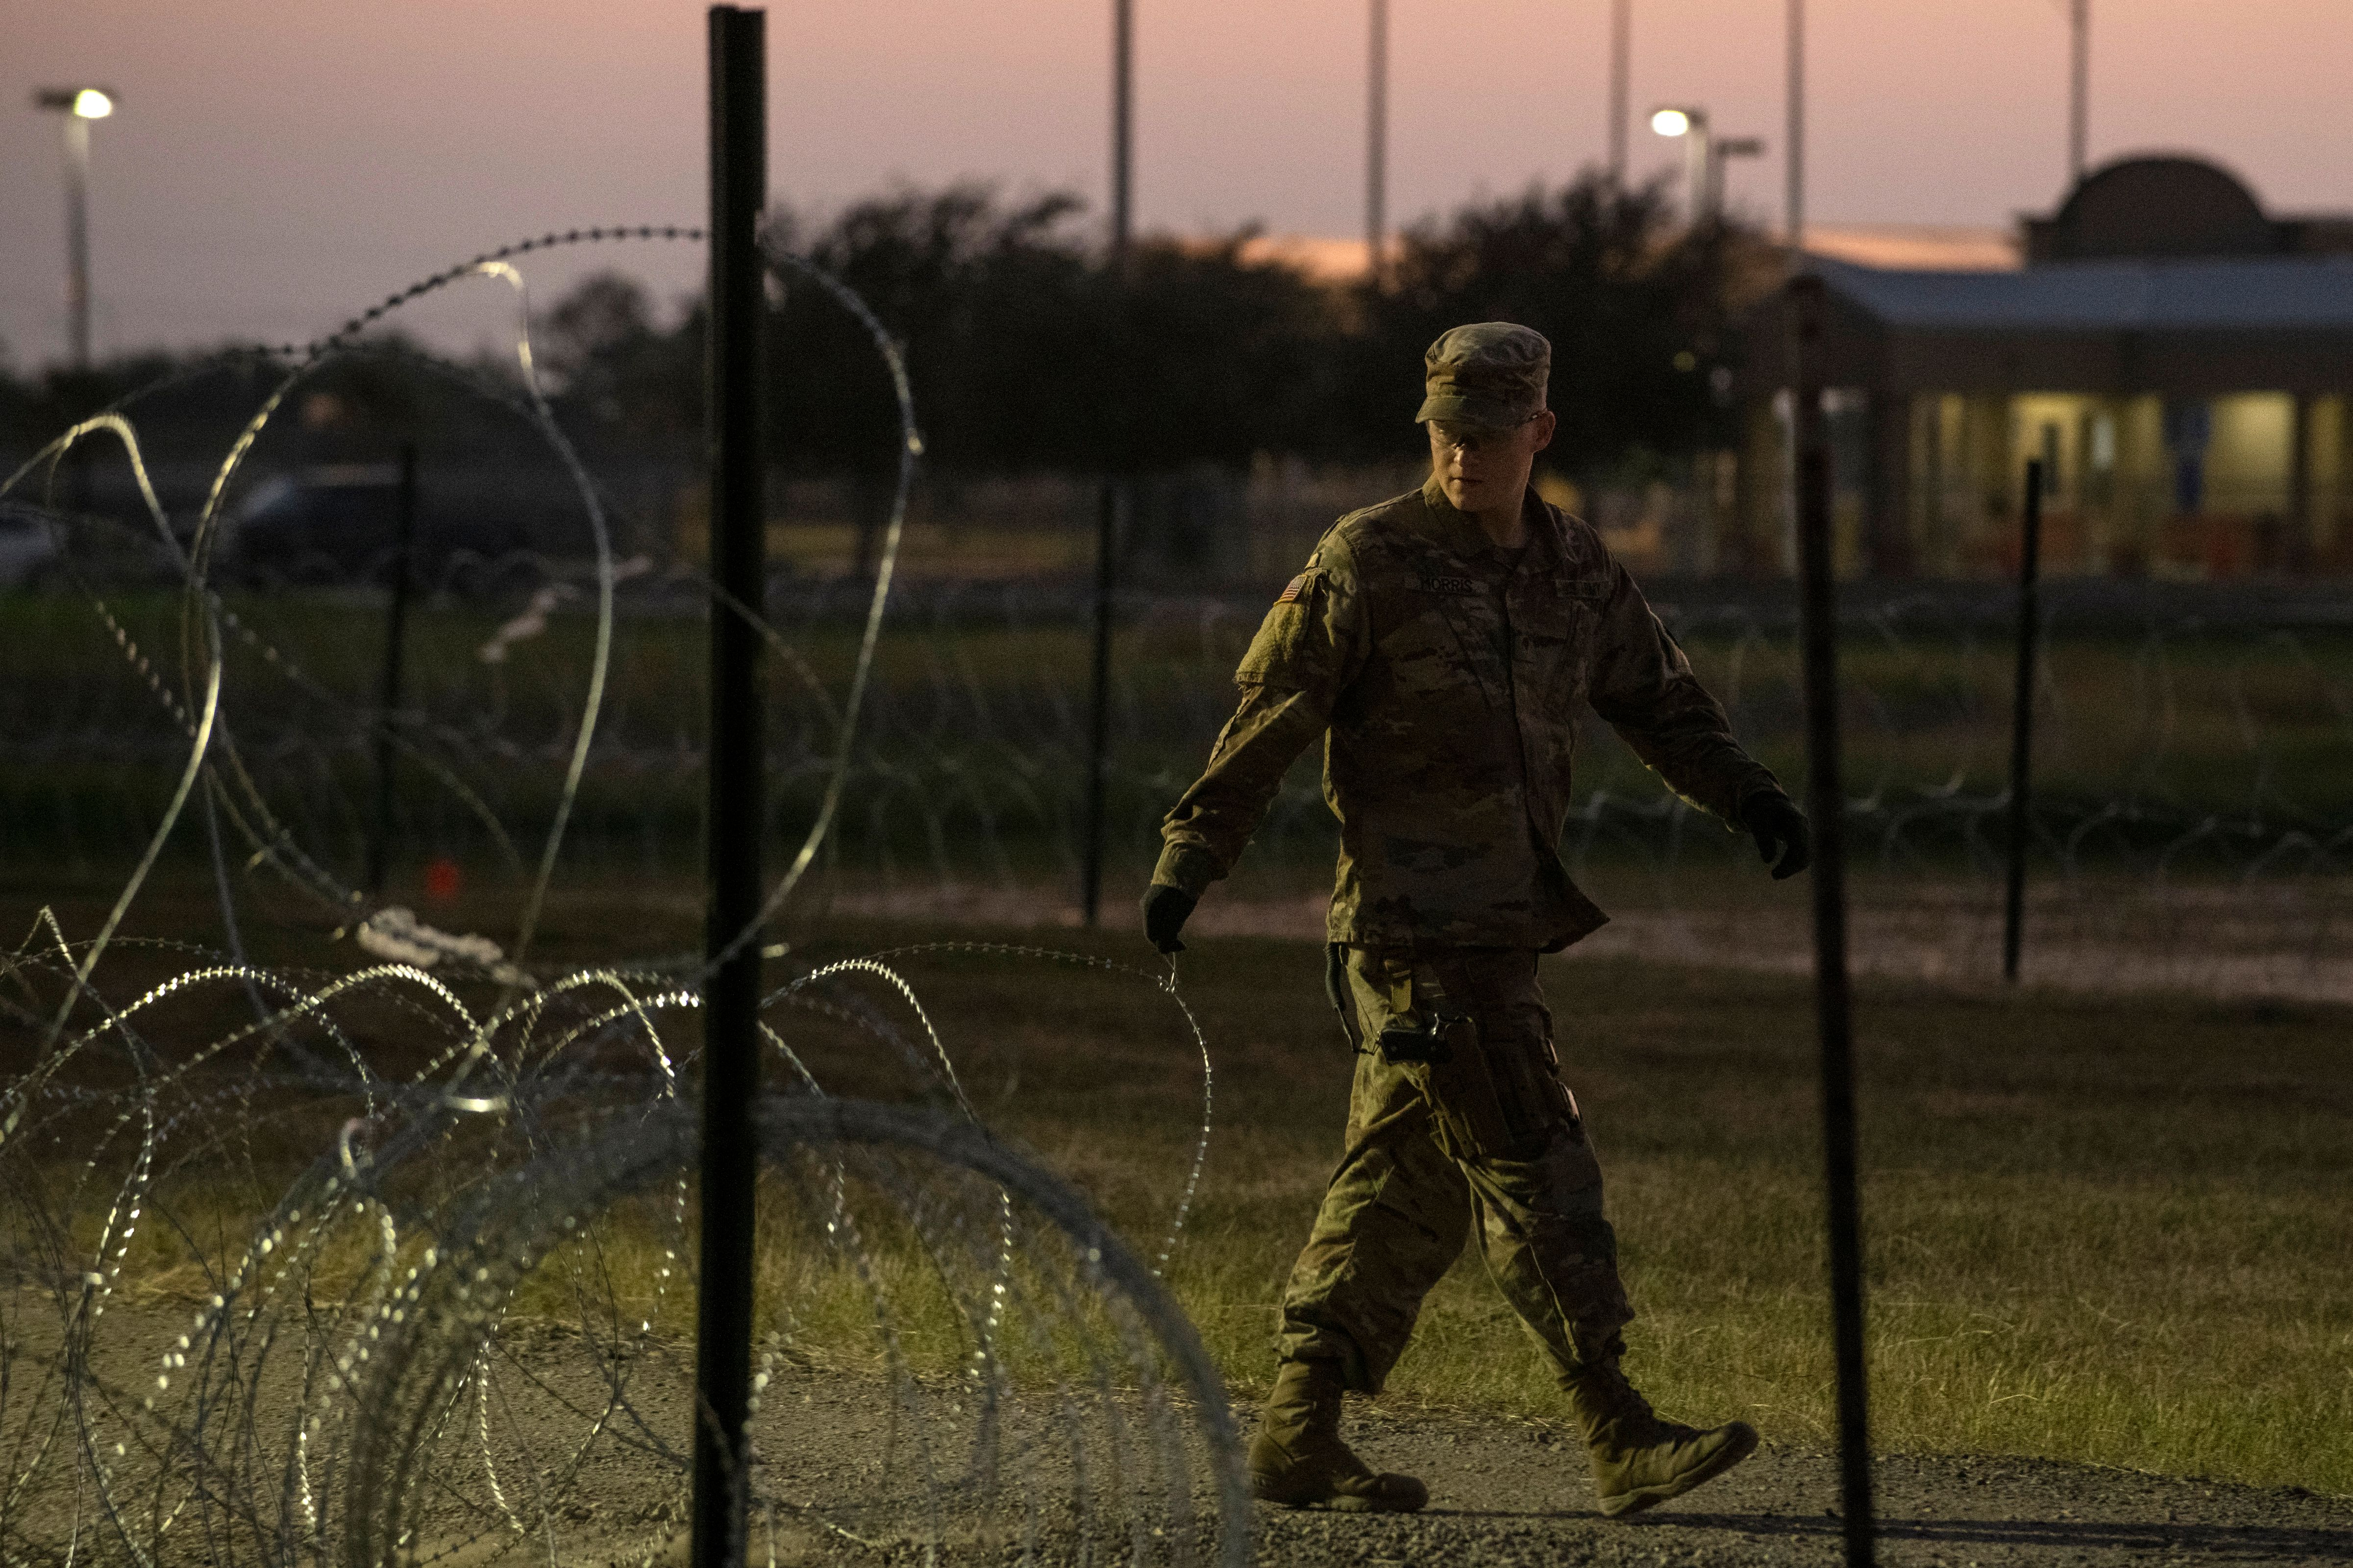 A US Army soldier closes a razor-wire gate at a compound where the military is erecting an encampment near the US-Mexico border crossing at Donna, Texas, on November 6, 2018.